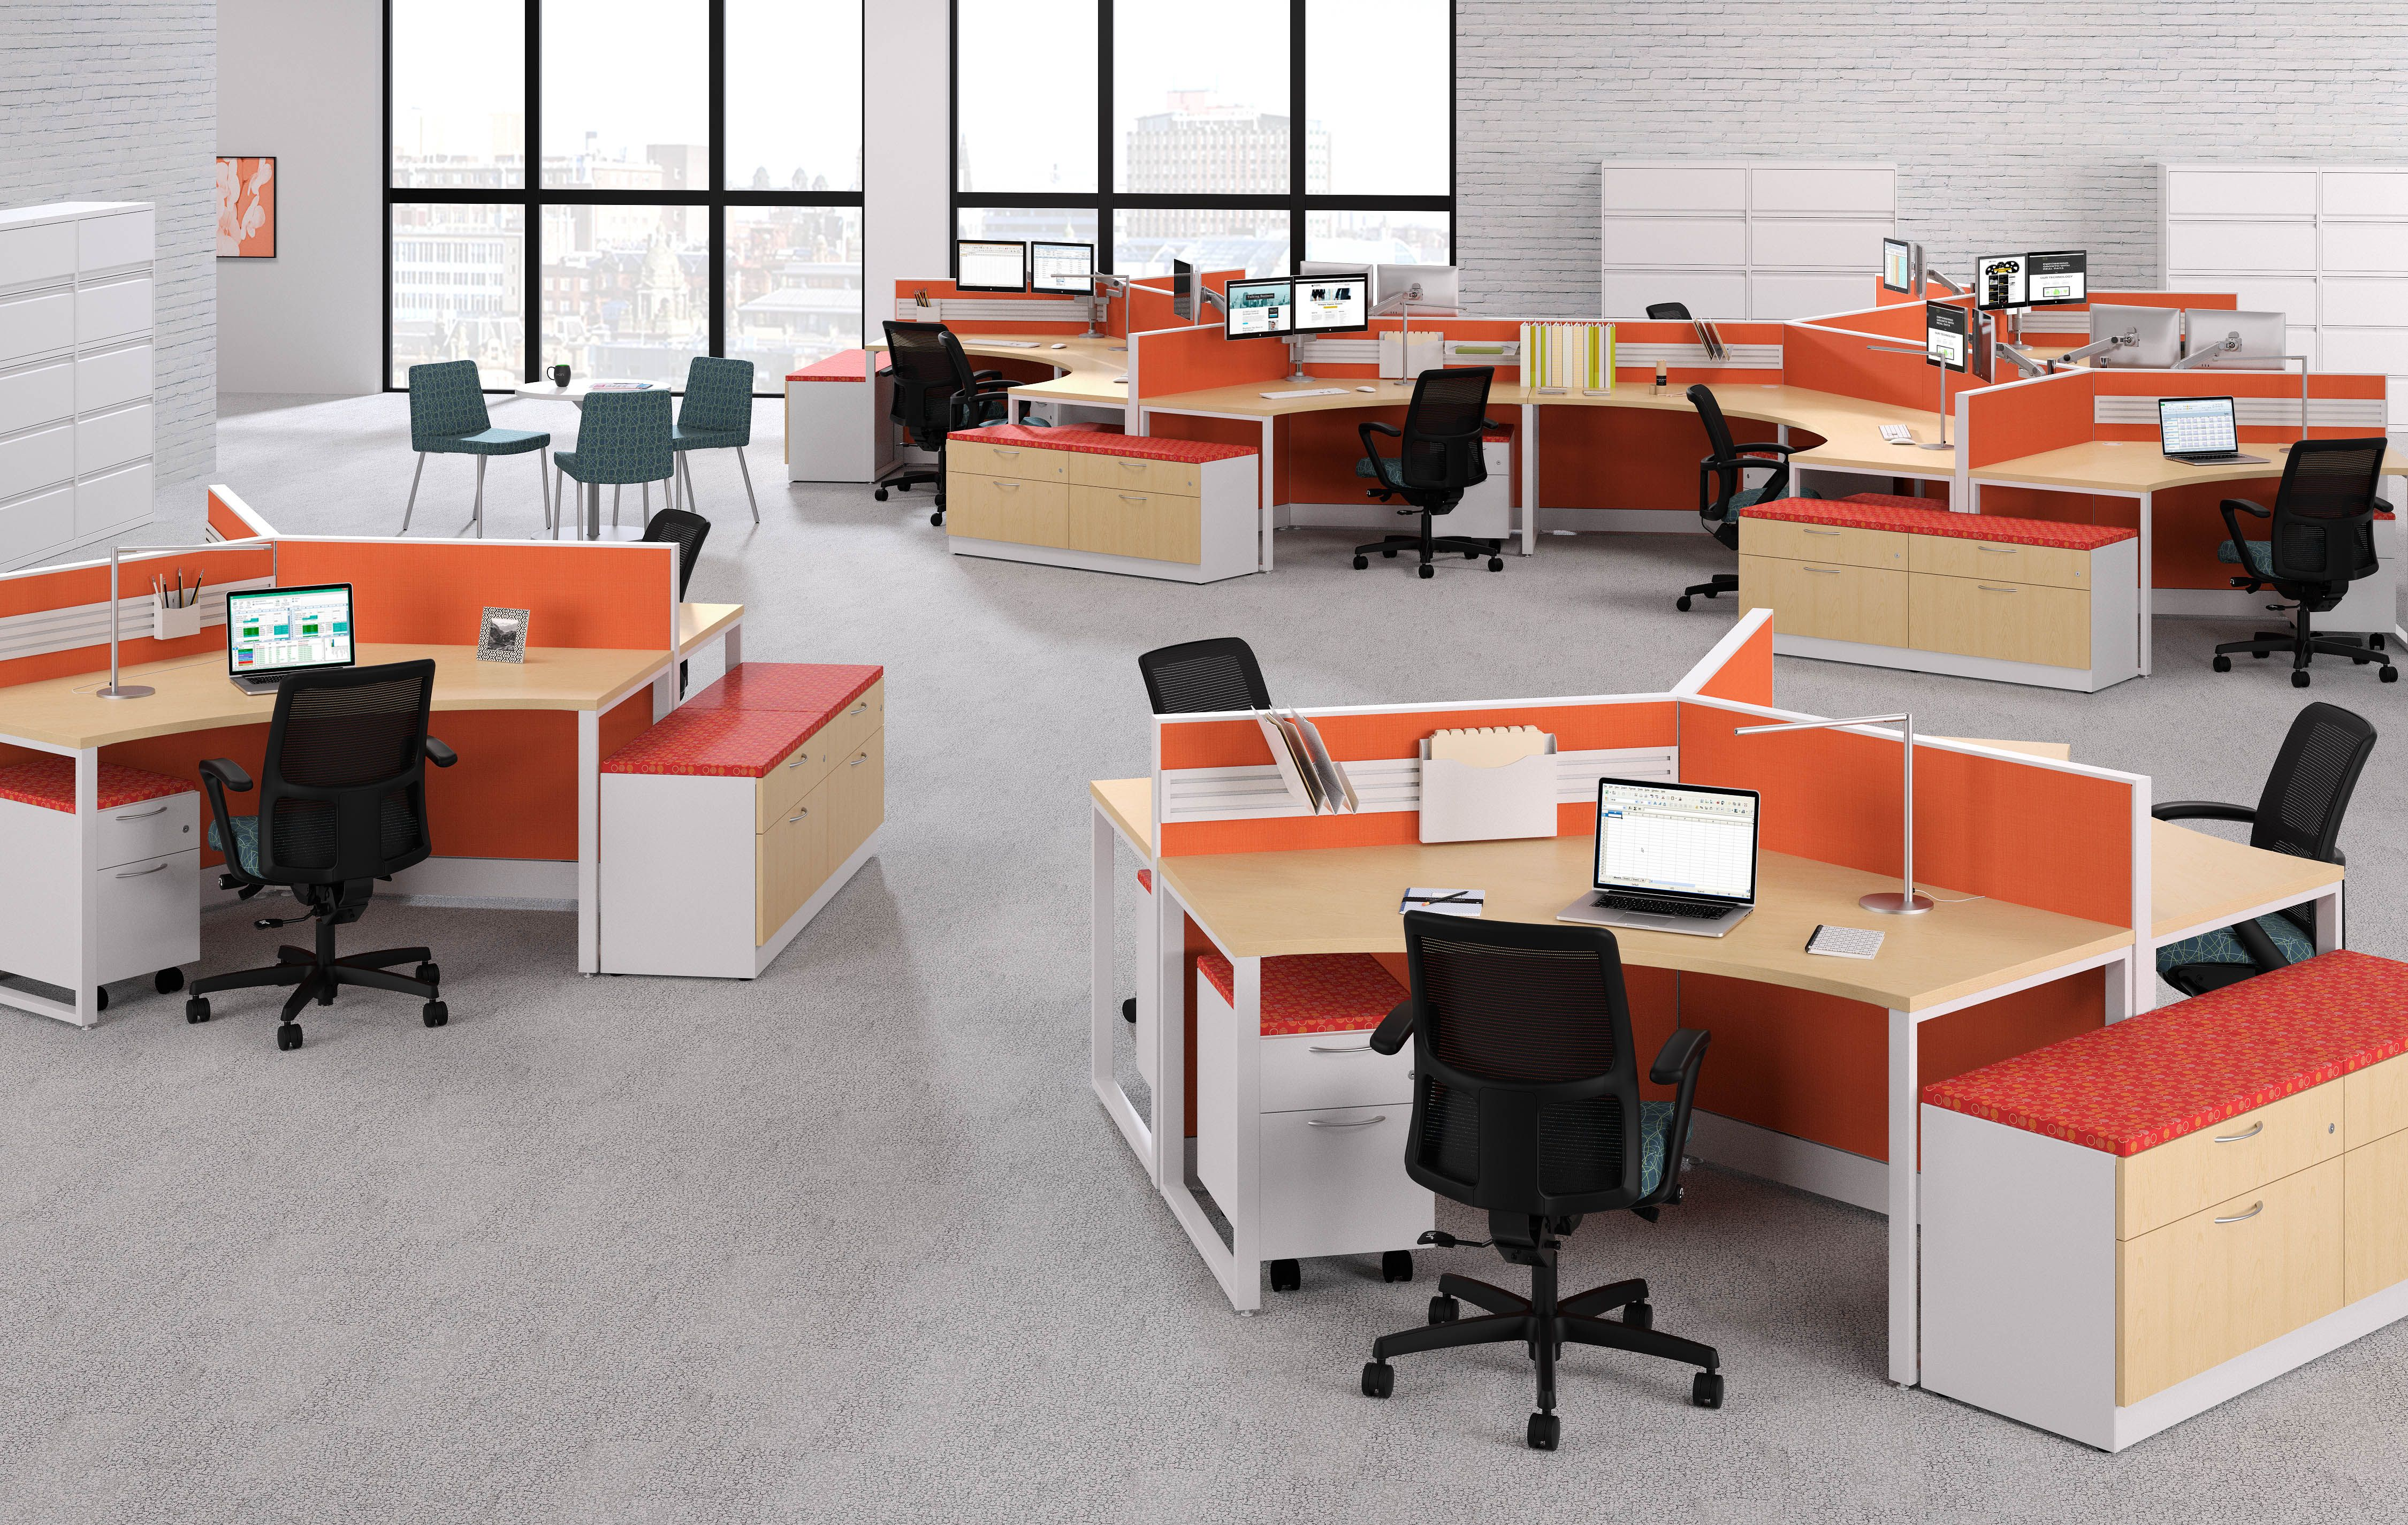 Pin By Neda Mortezaei On Office Interior Designd In 2020 Office